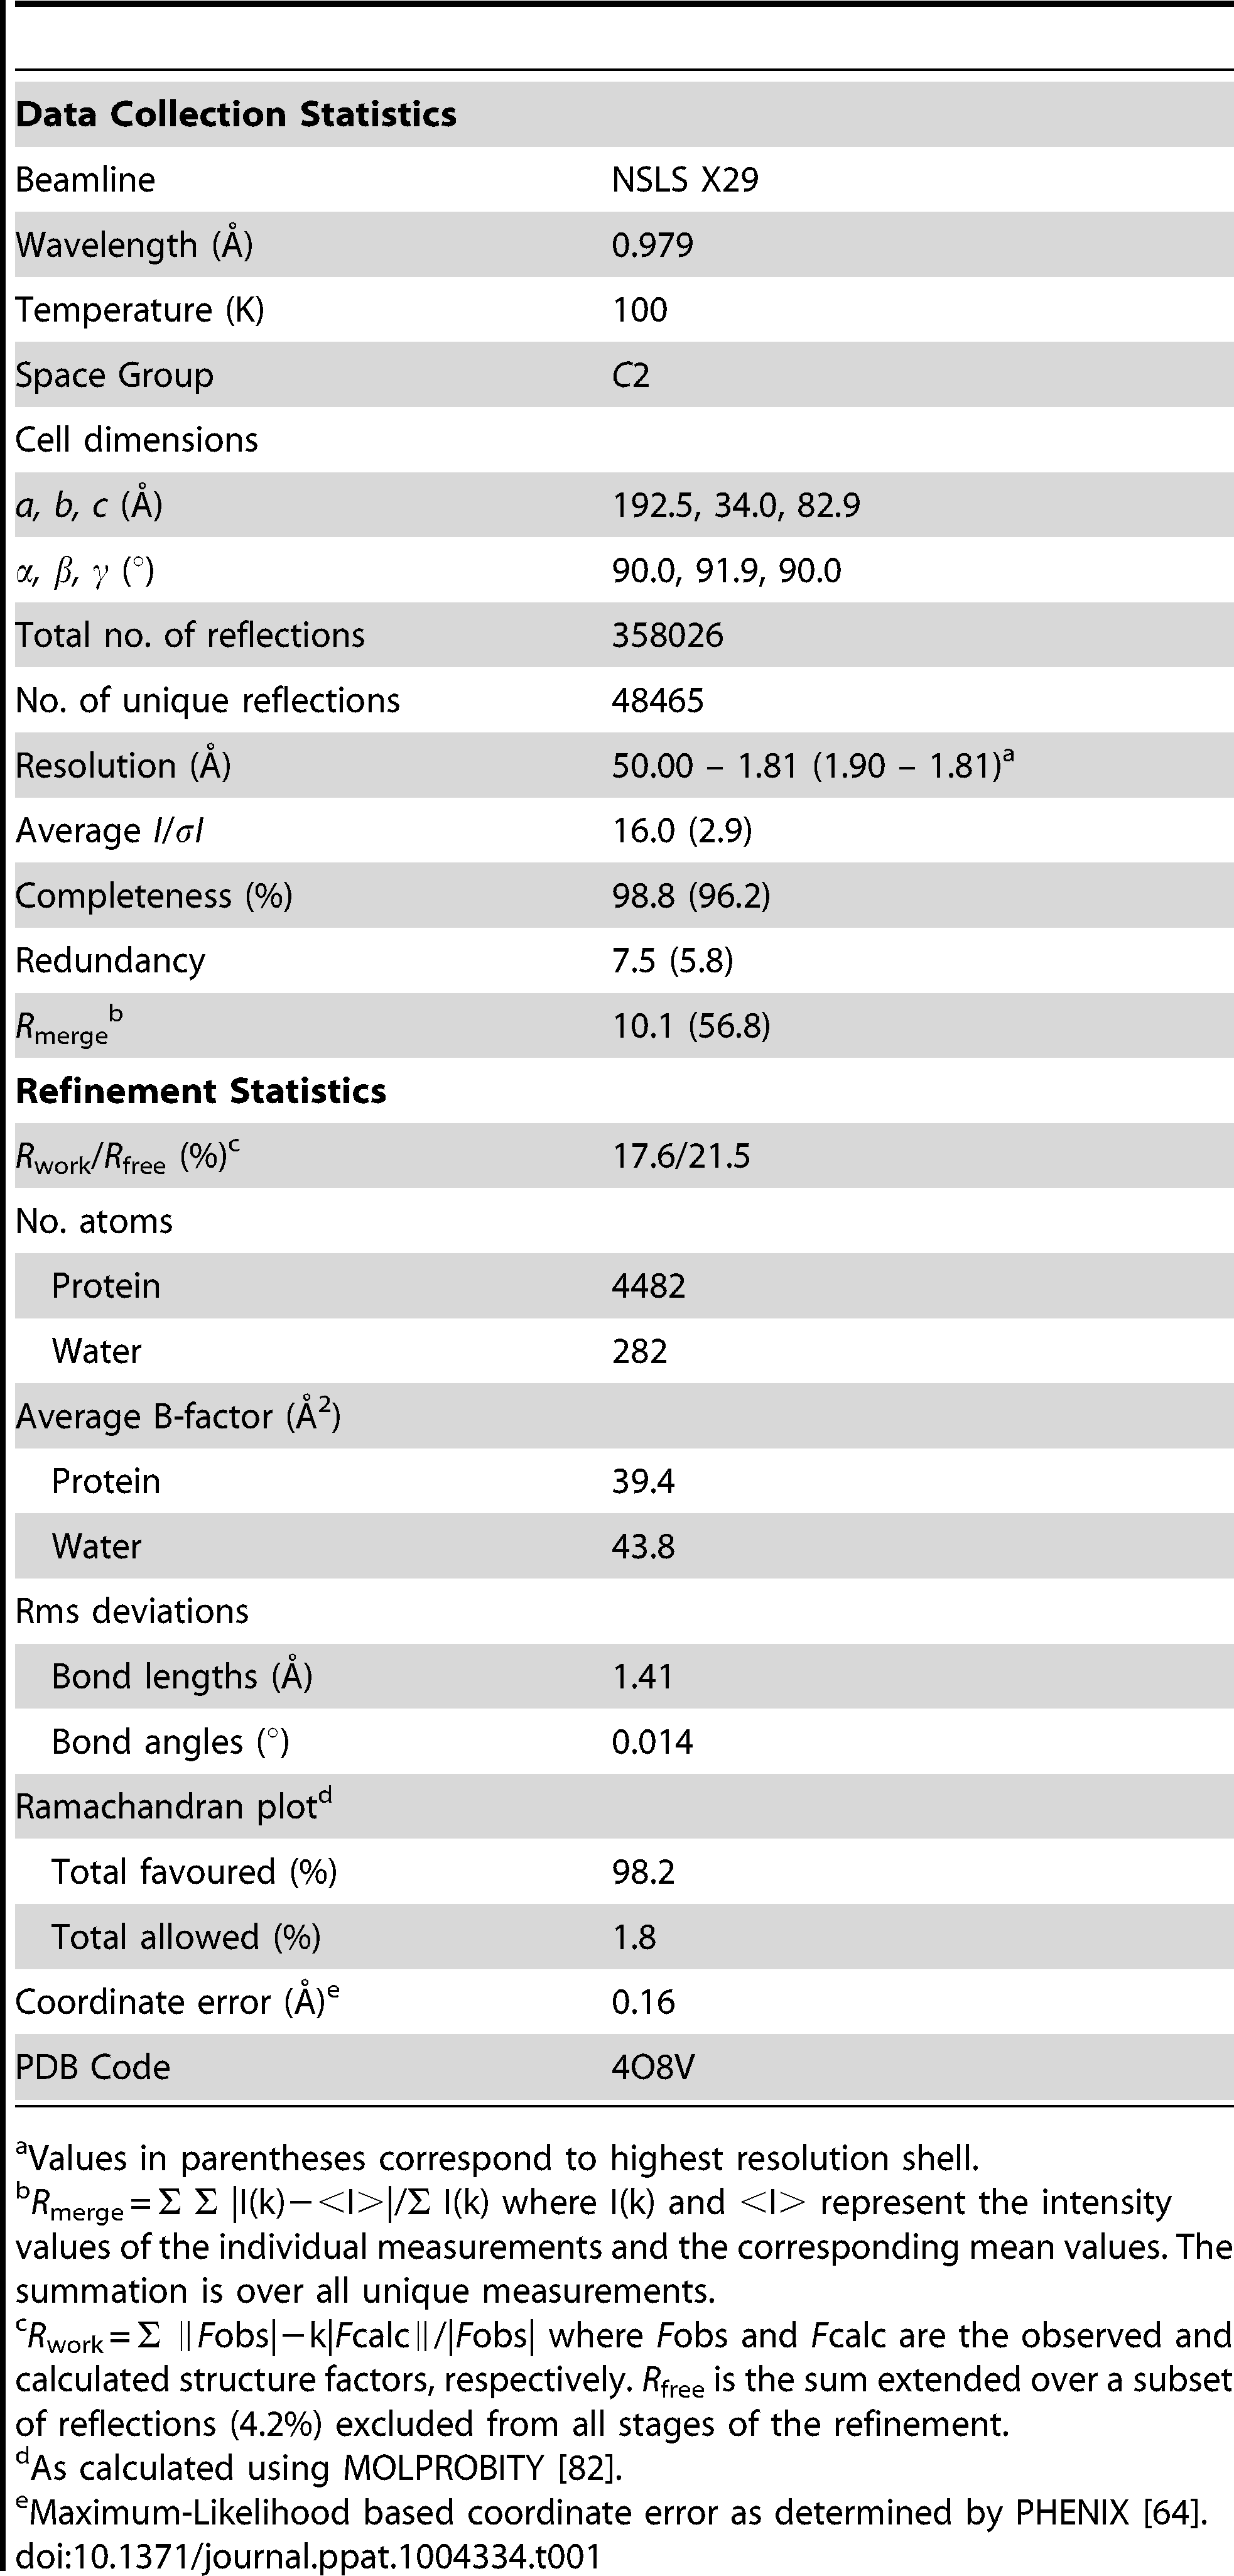 Summary of data collection and refinement statistics.